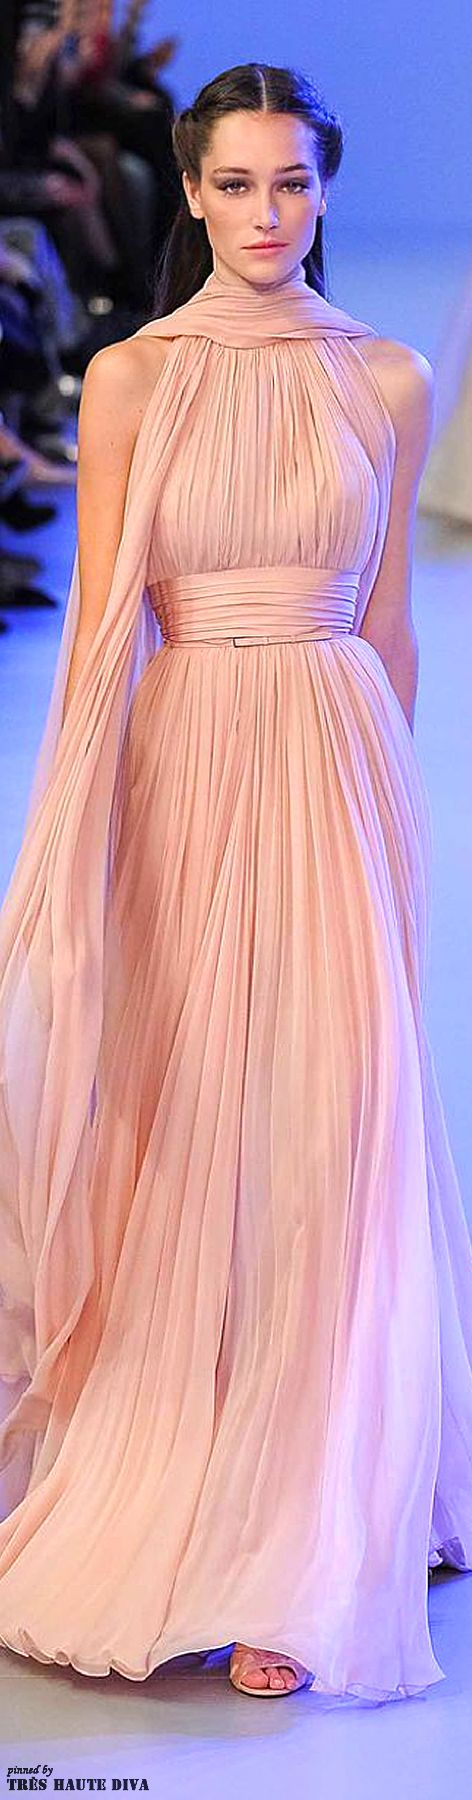 Elie Saab #Spring 2014 #Couture #fashion #dress #elegant #gown ...